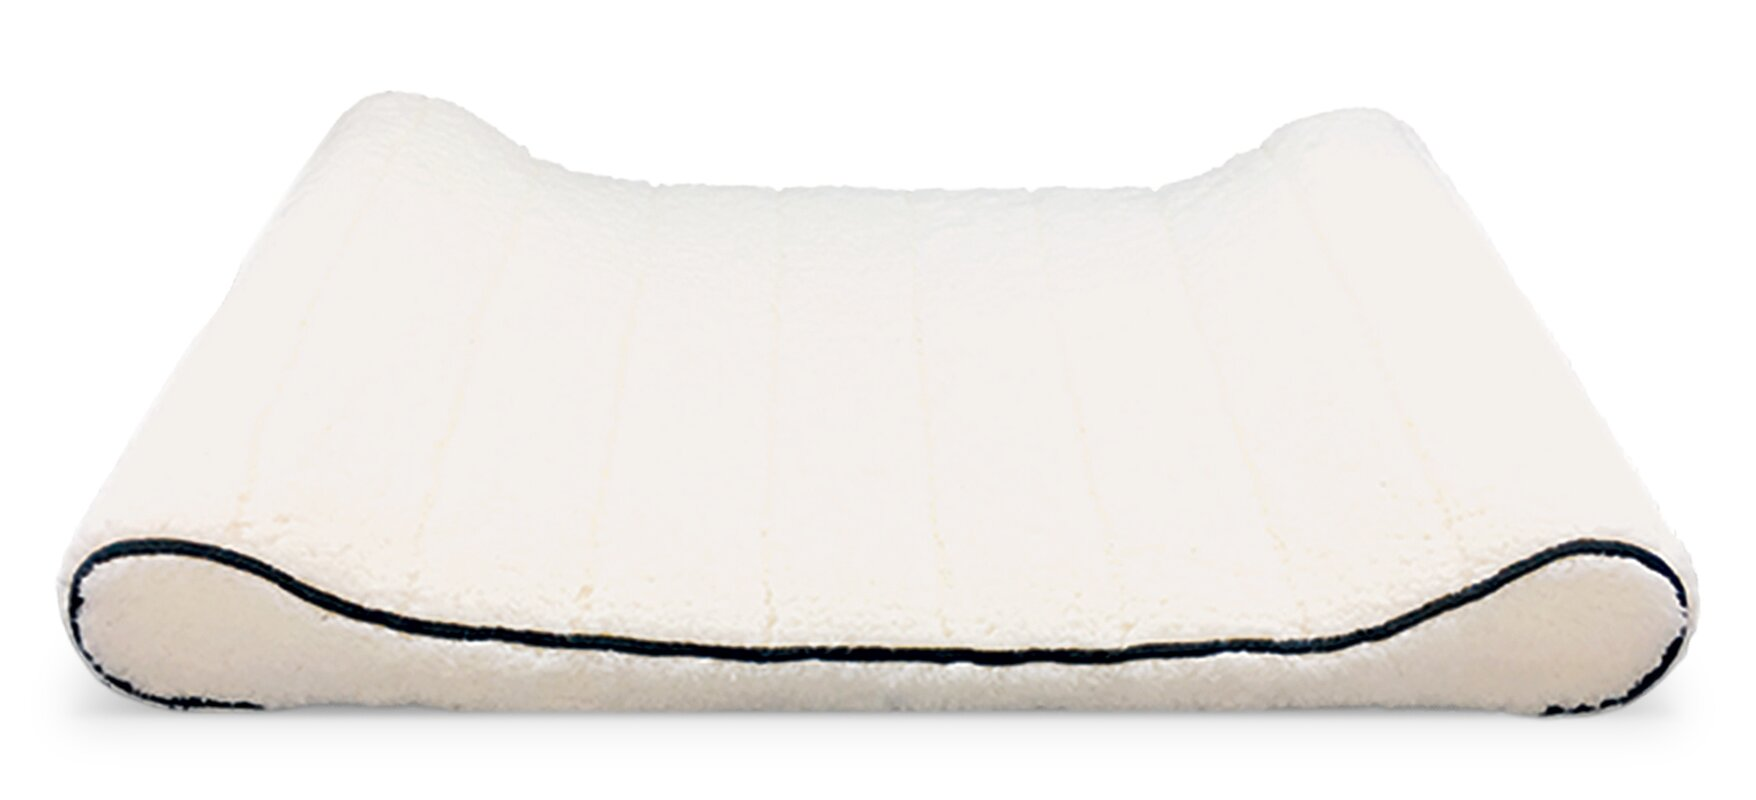 precioustails sherpa top memory foam orthopedic contoured lounger